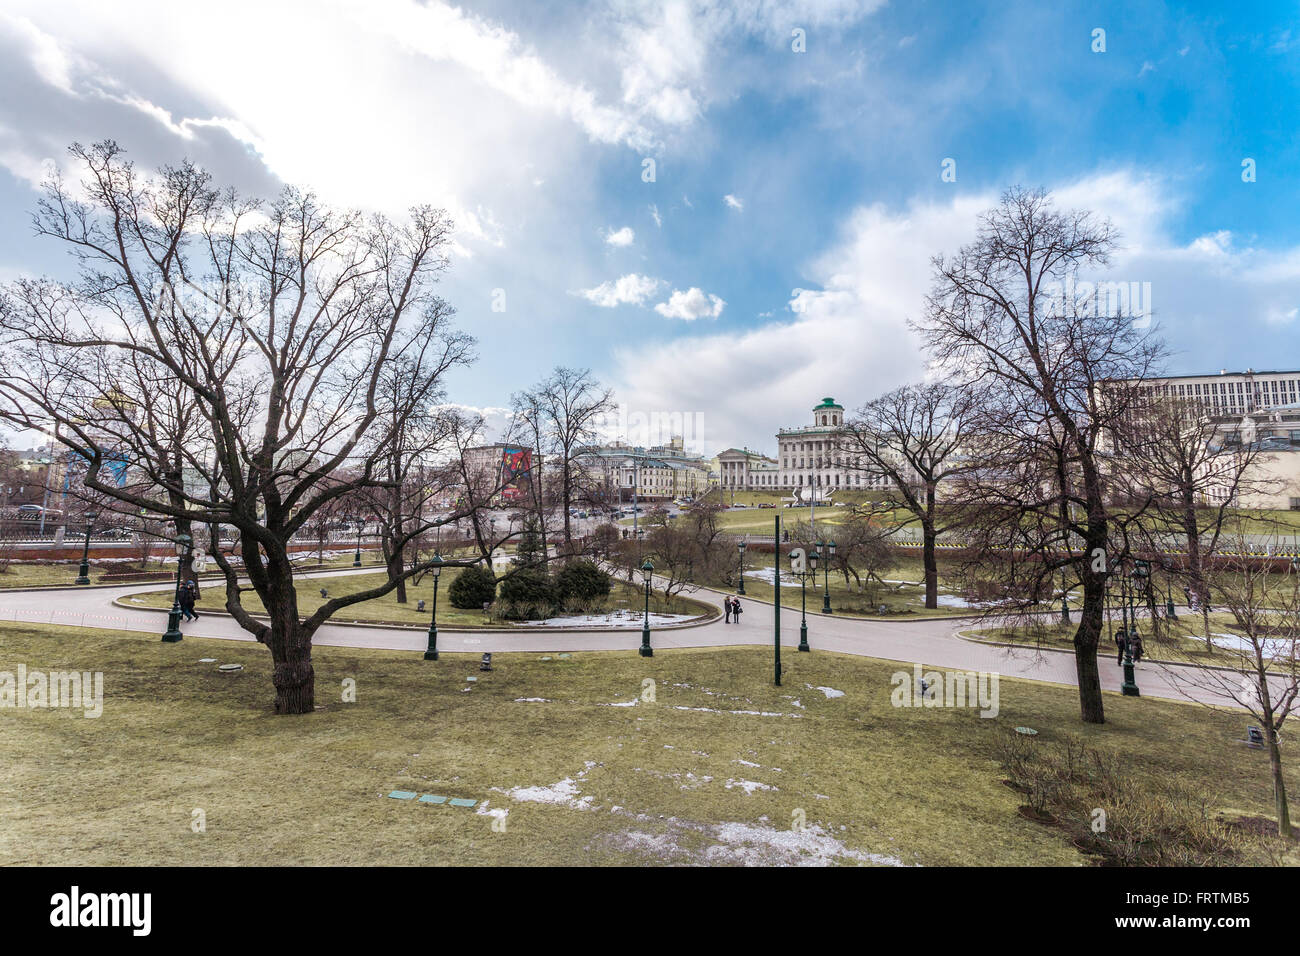 Moscow, Russia - March 20, 2016: Average garden of the Alexander Garden near walls of the Kremlin at the beginning - Stock Image